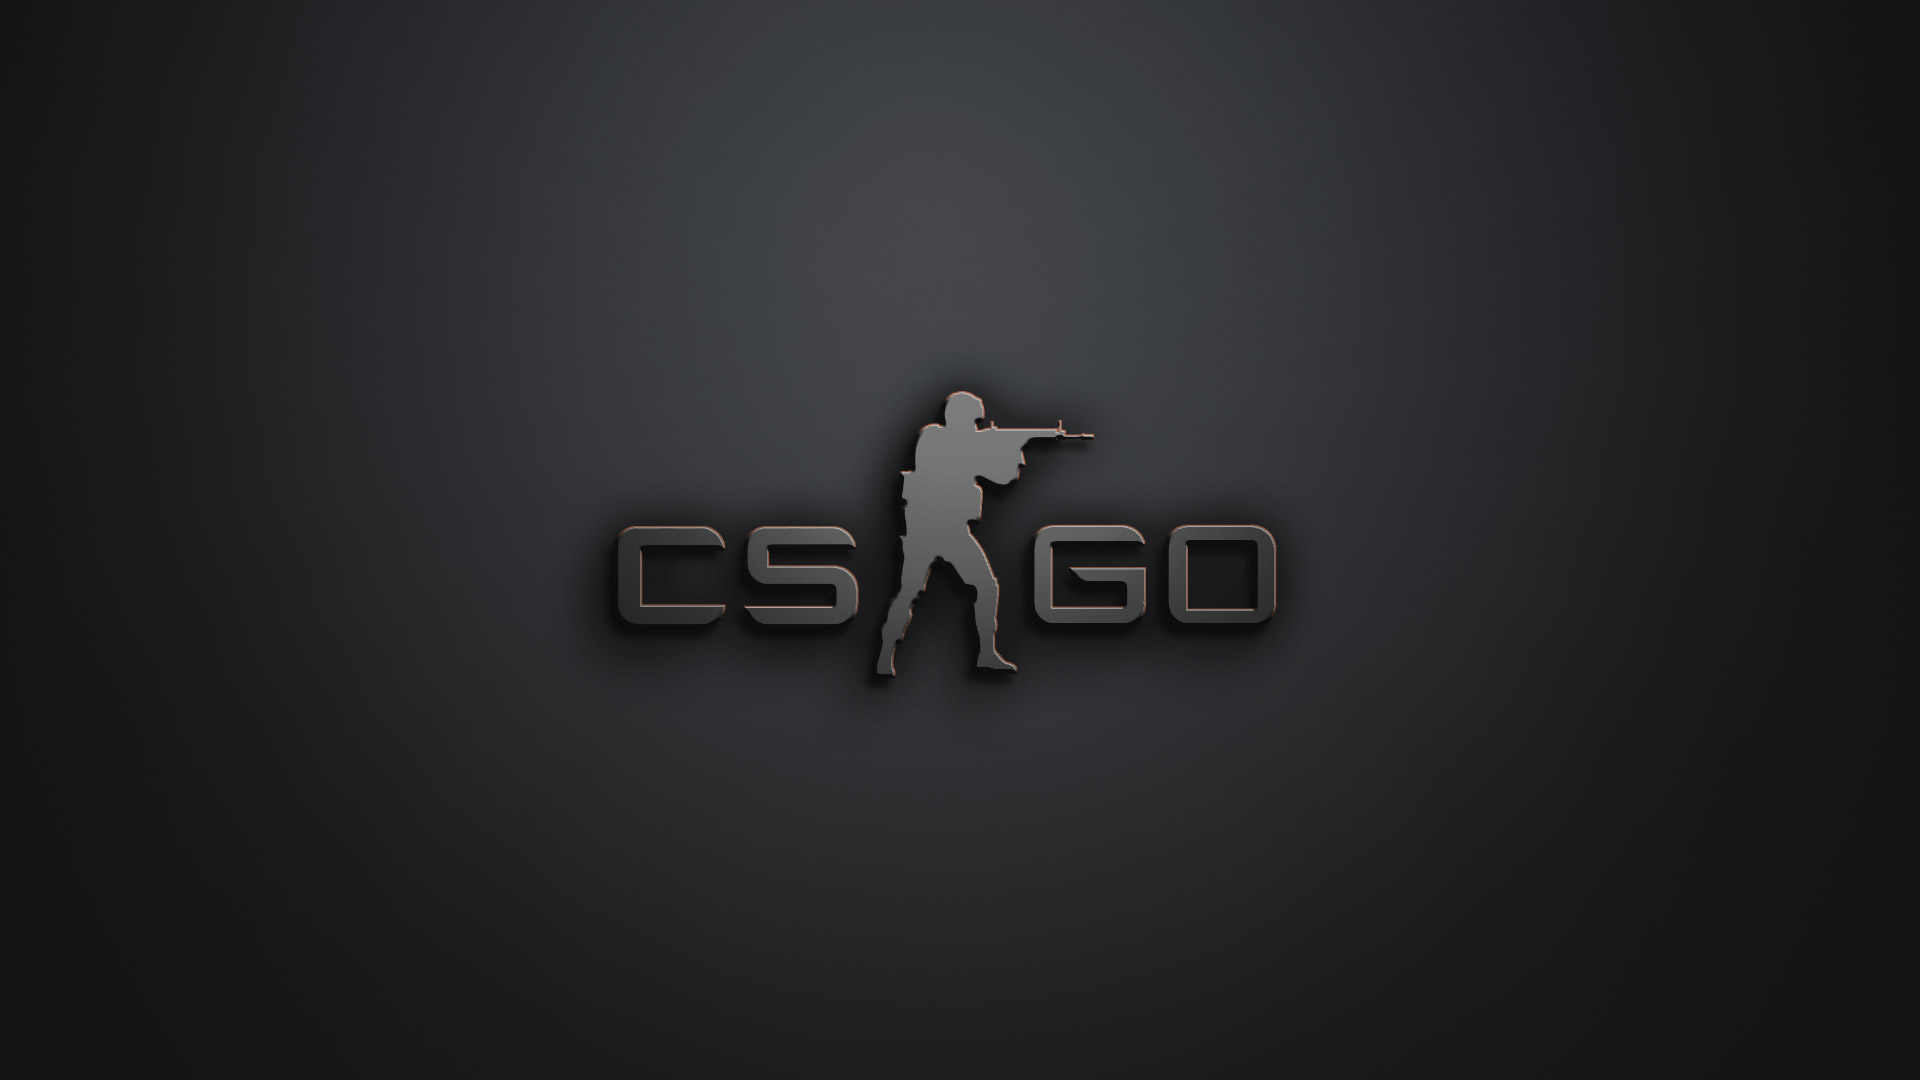 cs-go-wallpaper